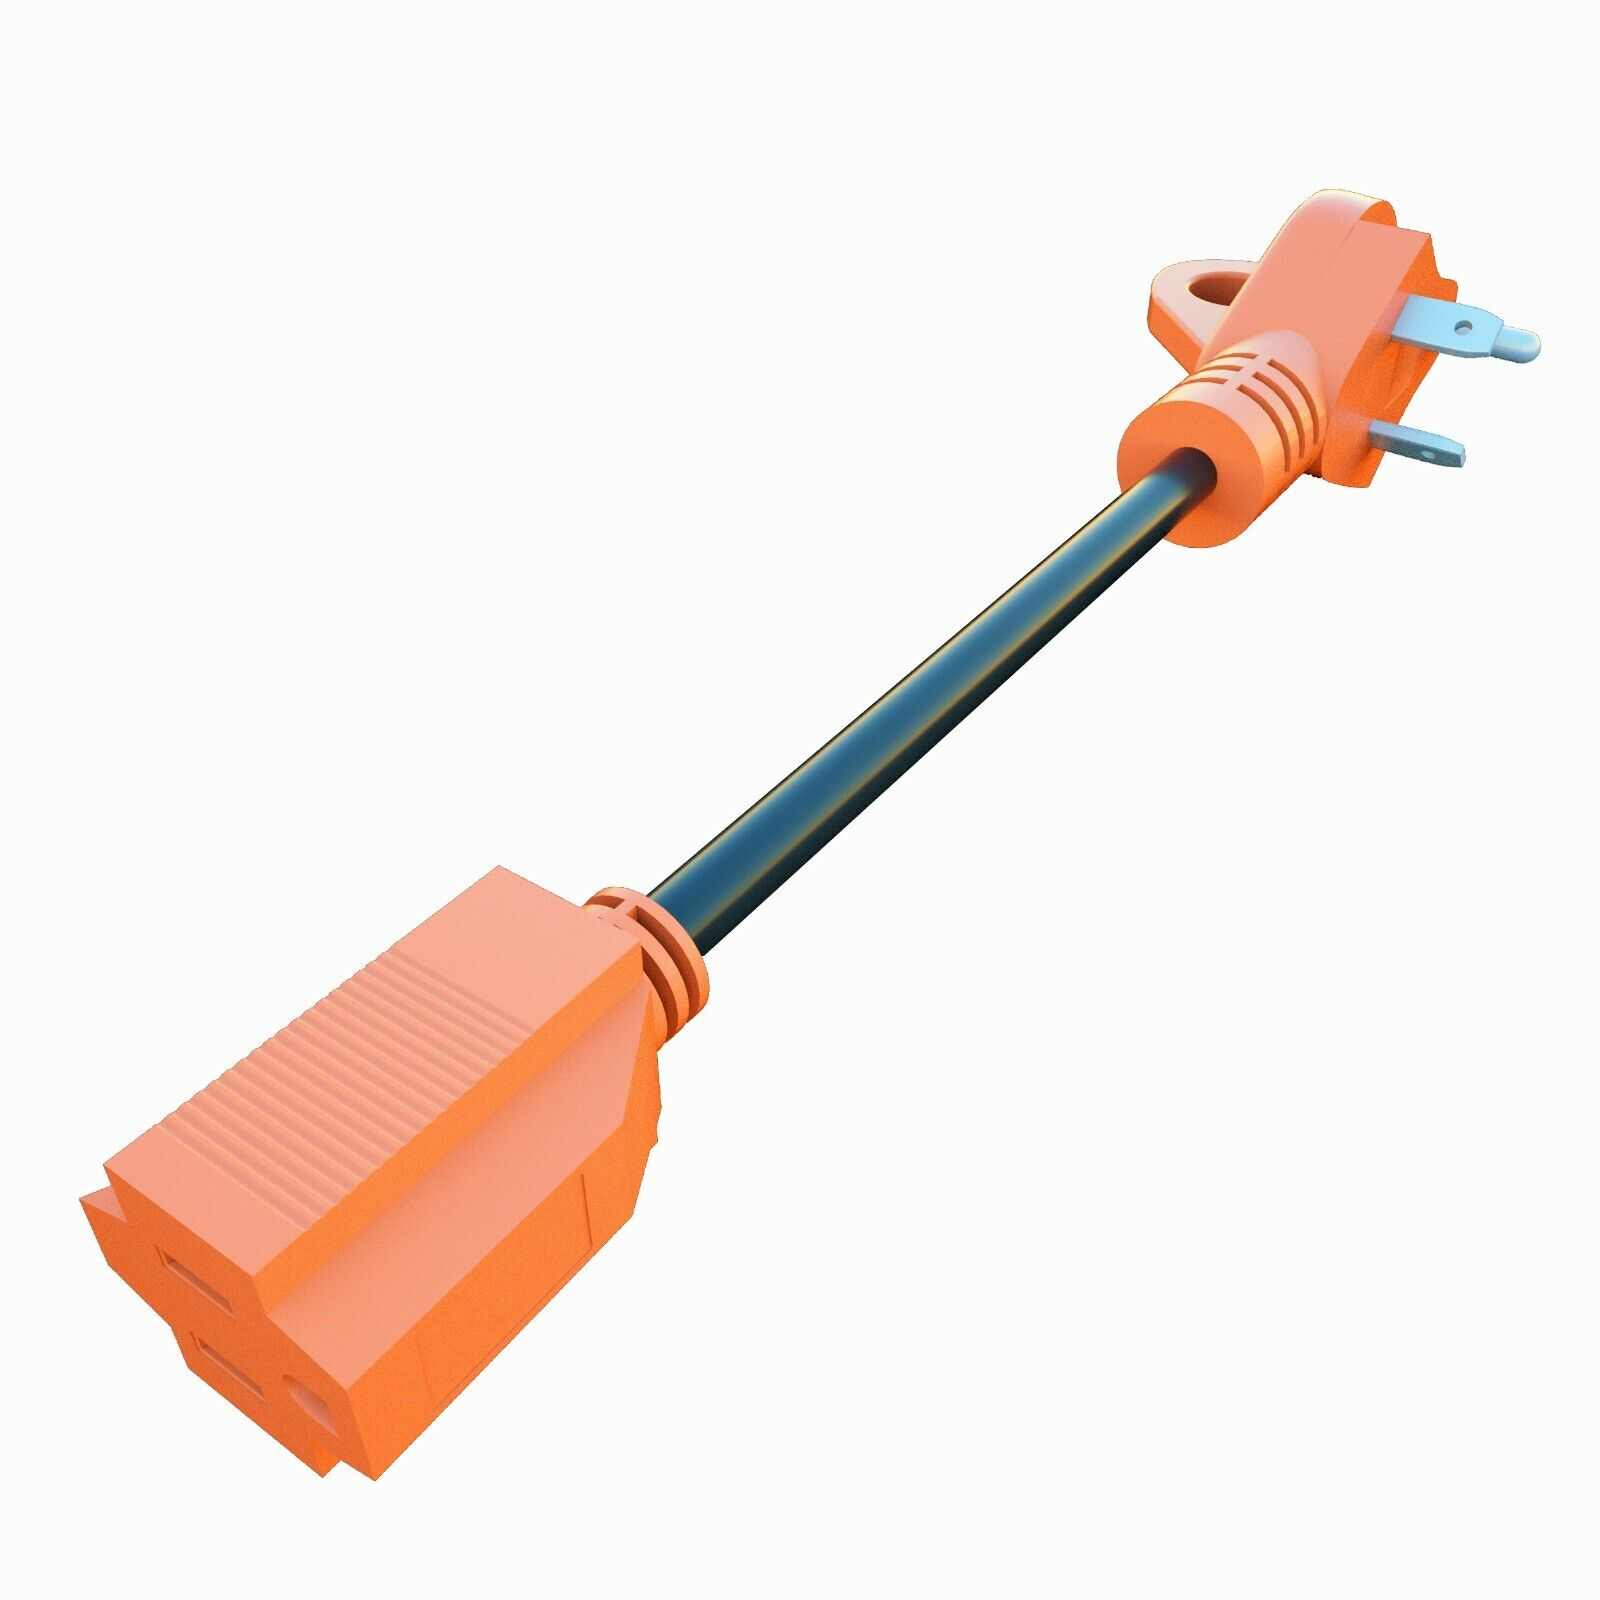 30Amp Female to 15Amp Male Adapter RV Electrical Converter Cord Cable eBay Motors